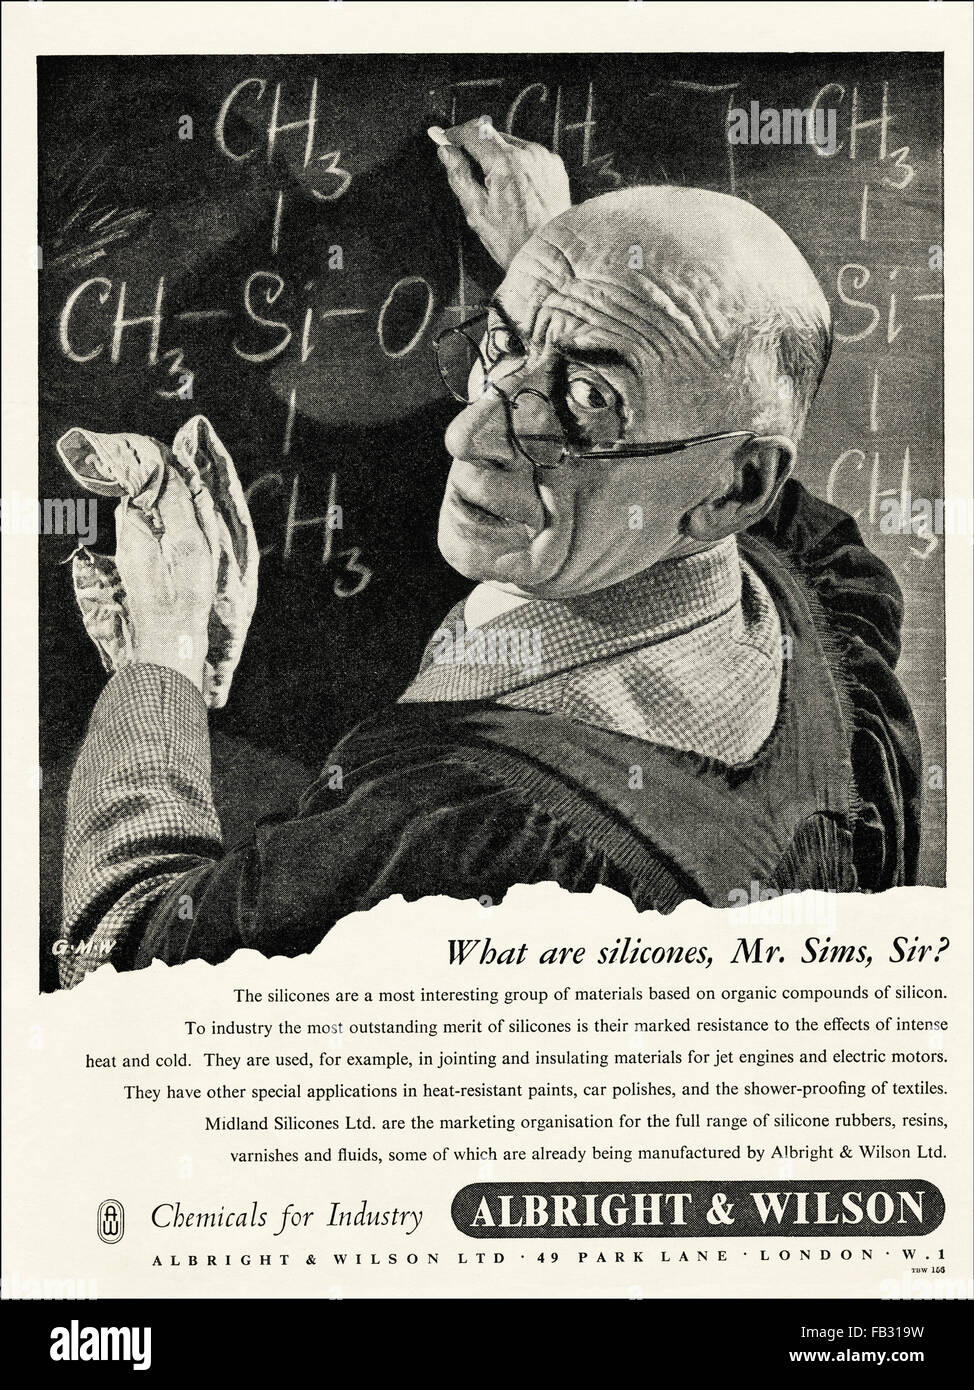 Original full page vintage advert from 1950s. Advertisements from 1953 advertising Albright & Wilson chemicals - Stock Image